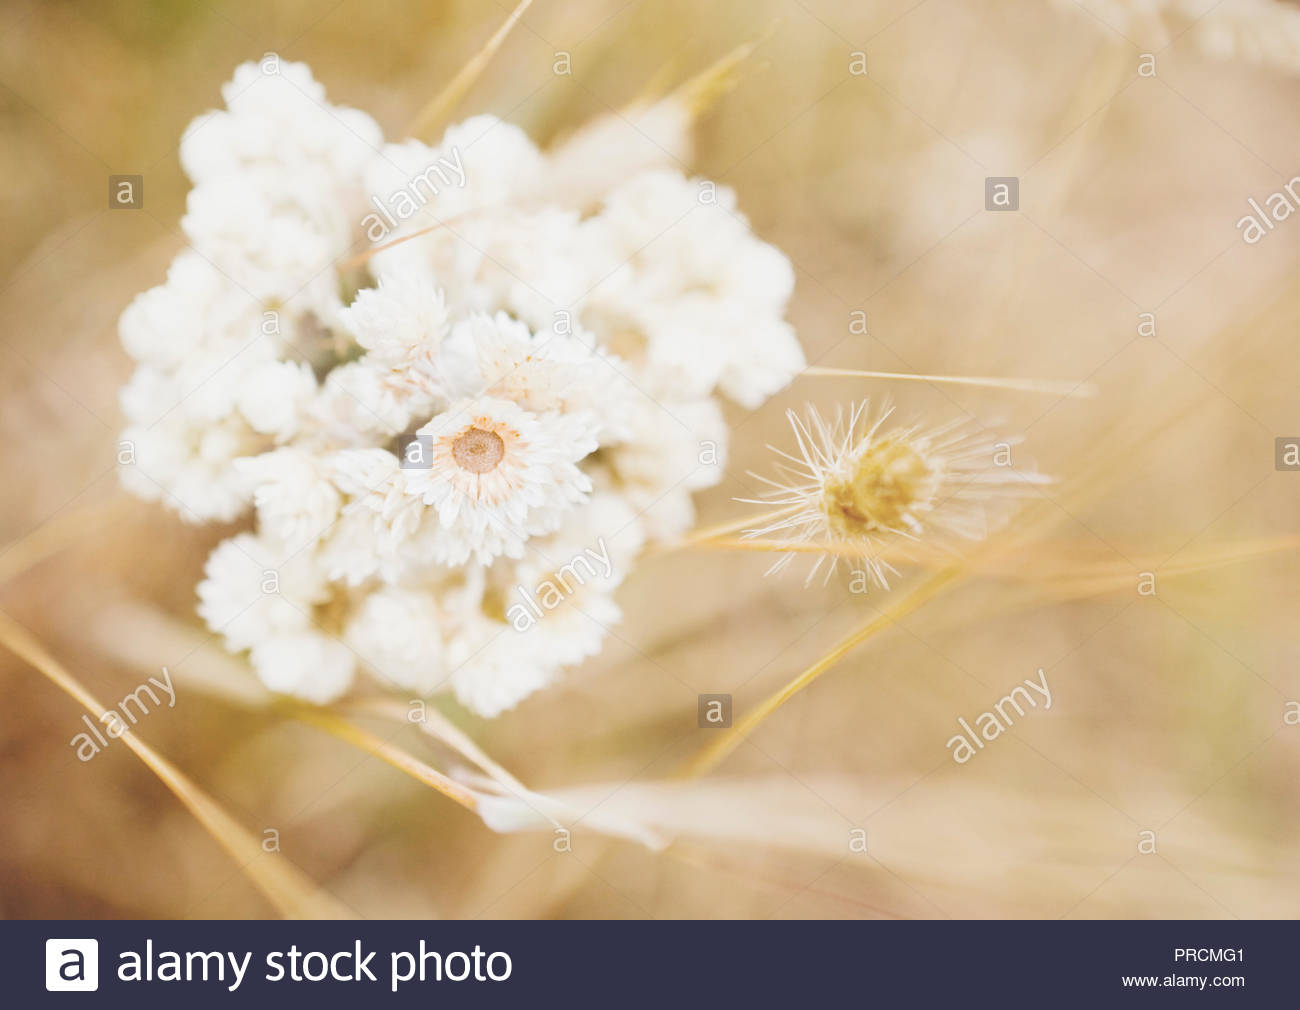 Warm breezy day near the coast of Point Reyes National Seashore - wildflowers and soft backdrop as copy space. - Stock Image